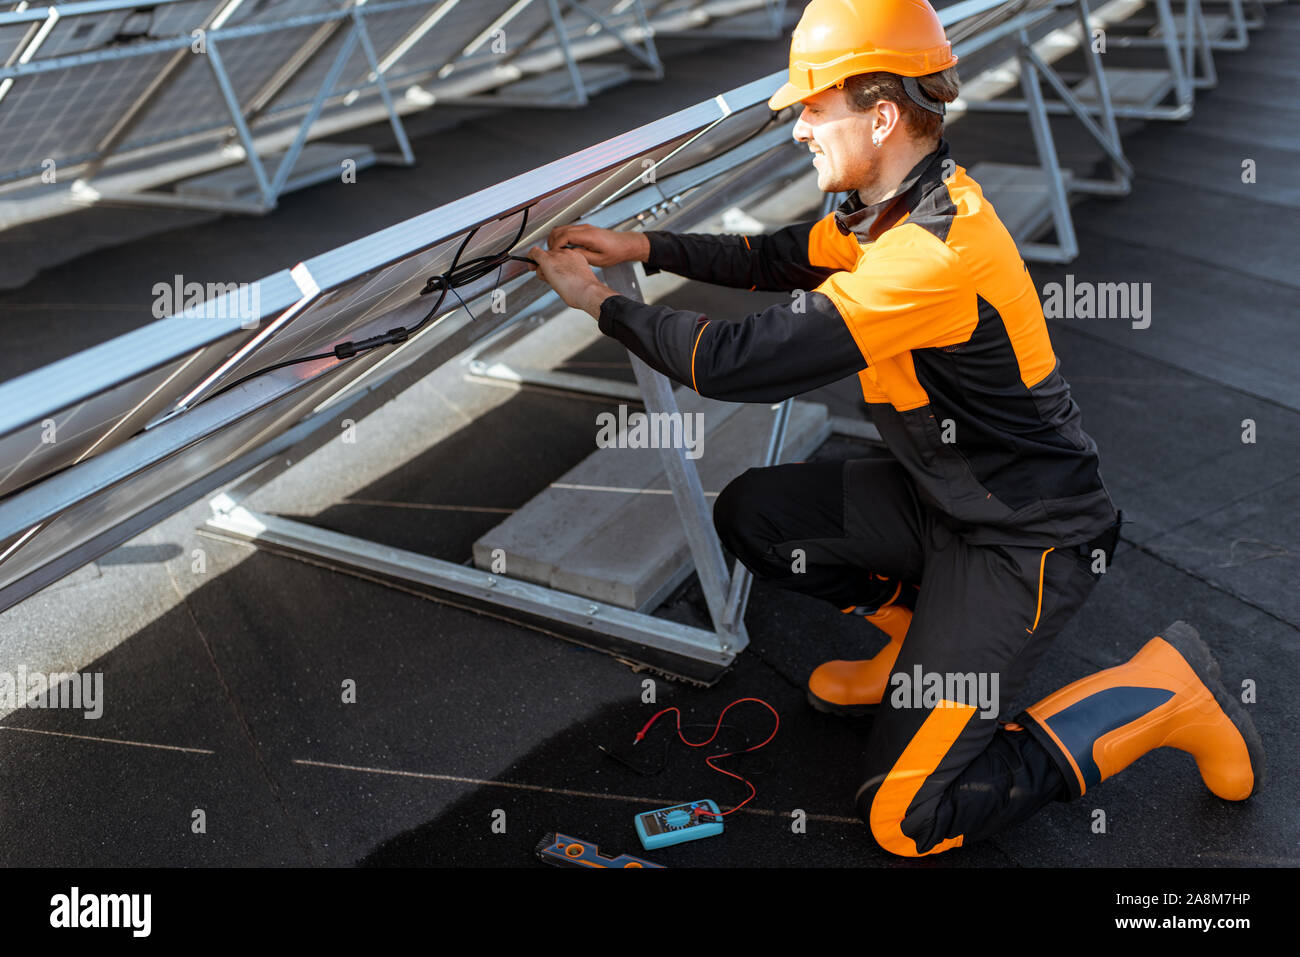 Well-equipped electrician connecting wires of solar panels on a rooftop photovoltaic power plant. Concept of installing solar stations Stock Photo